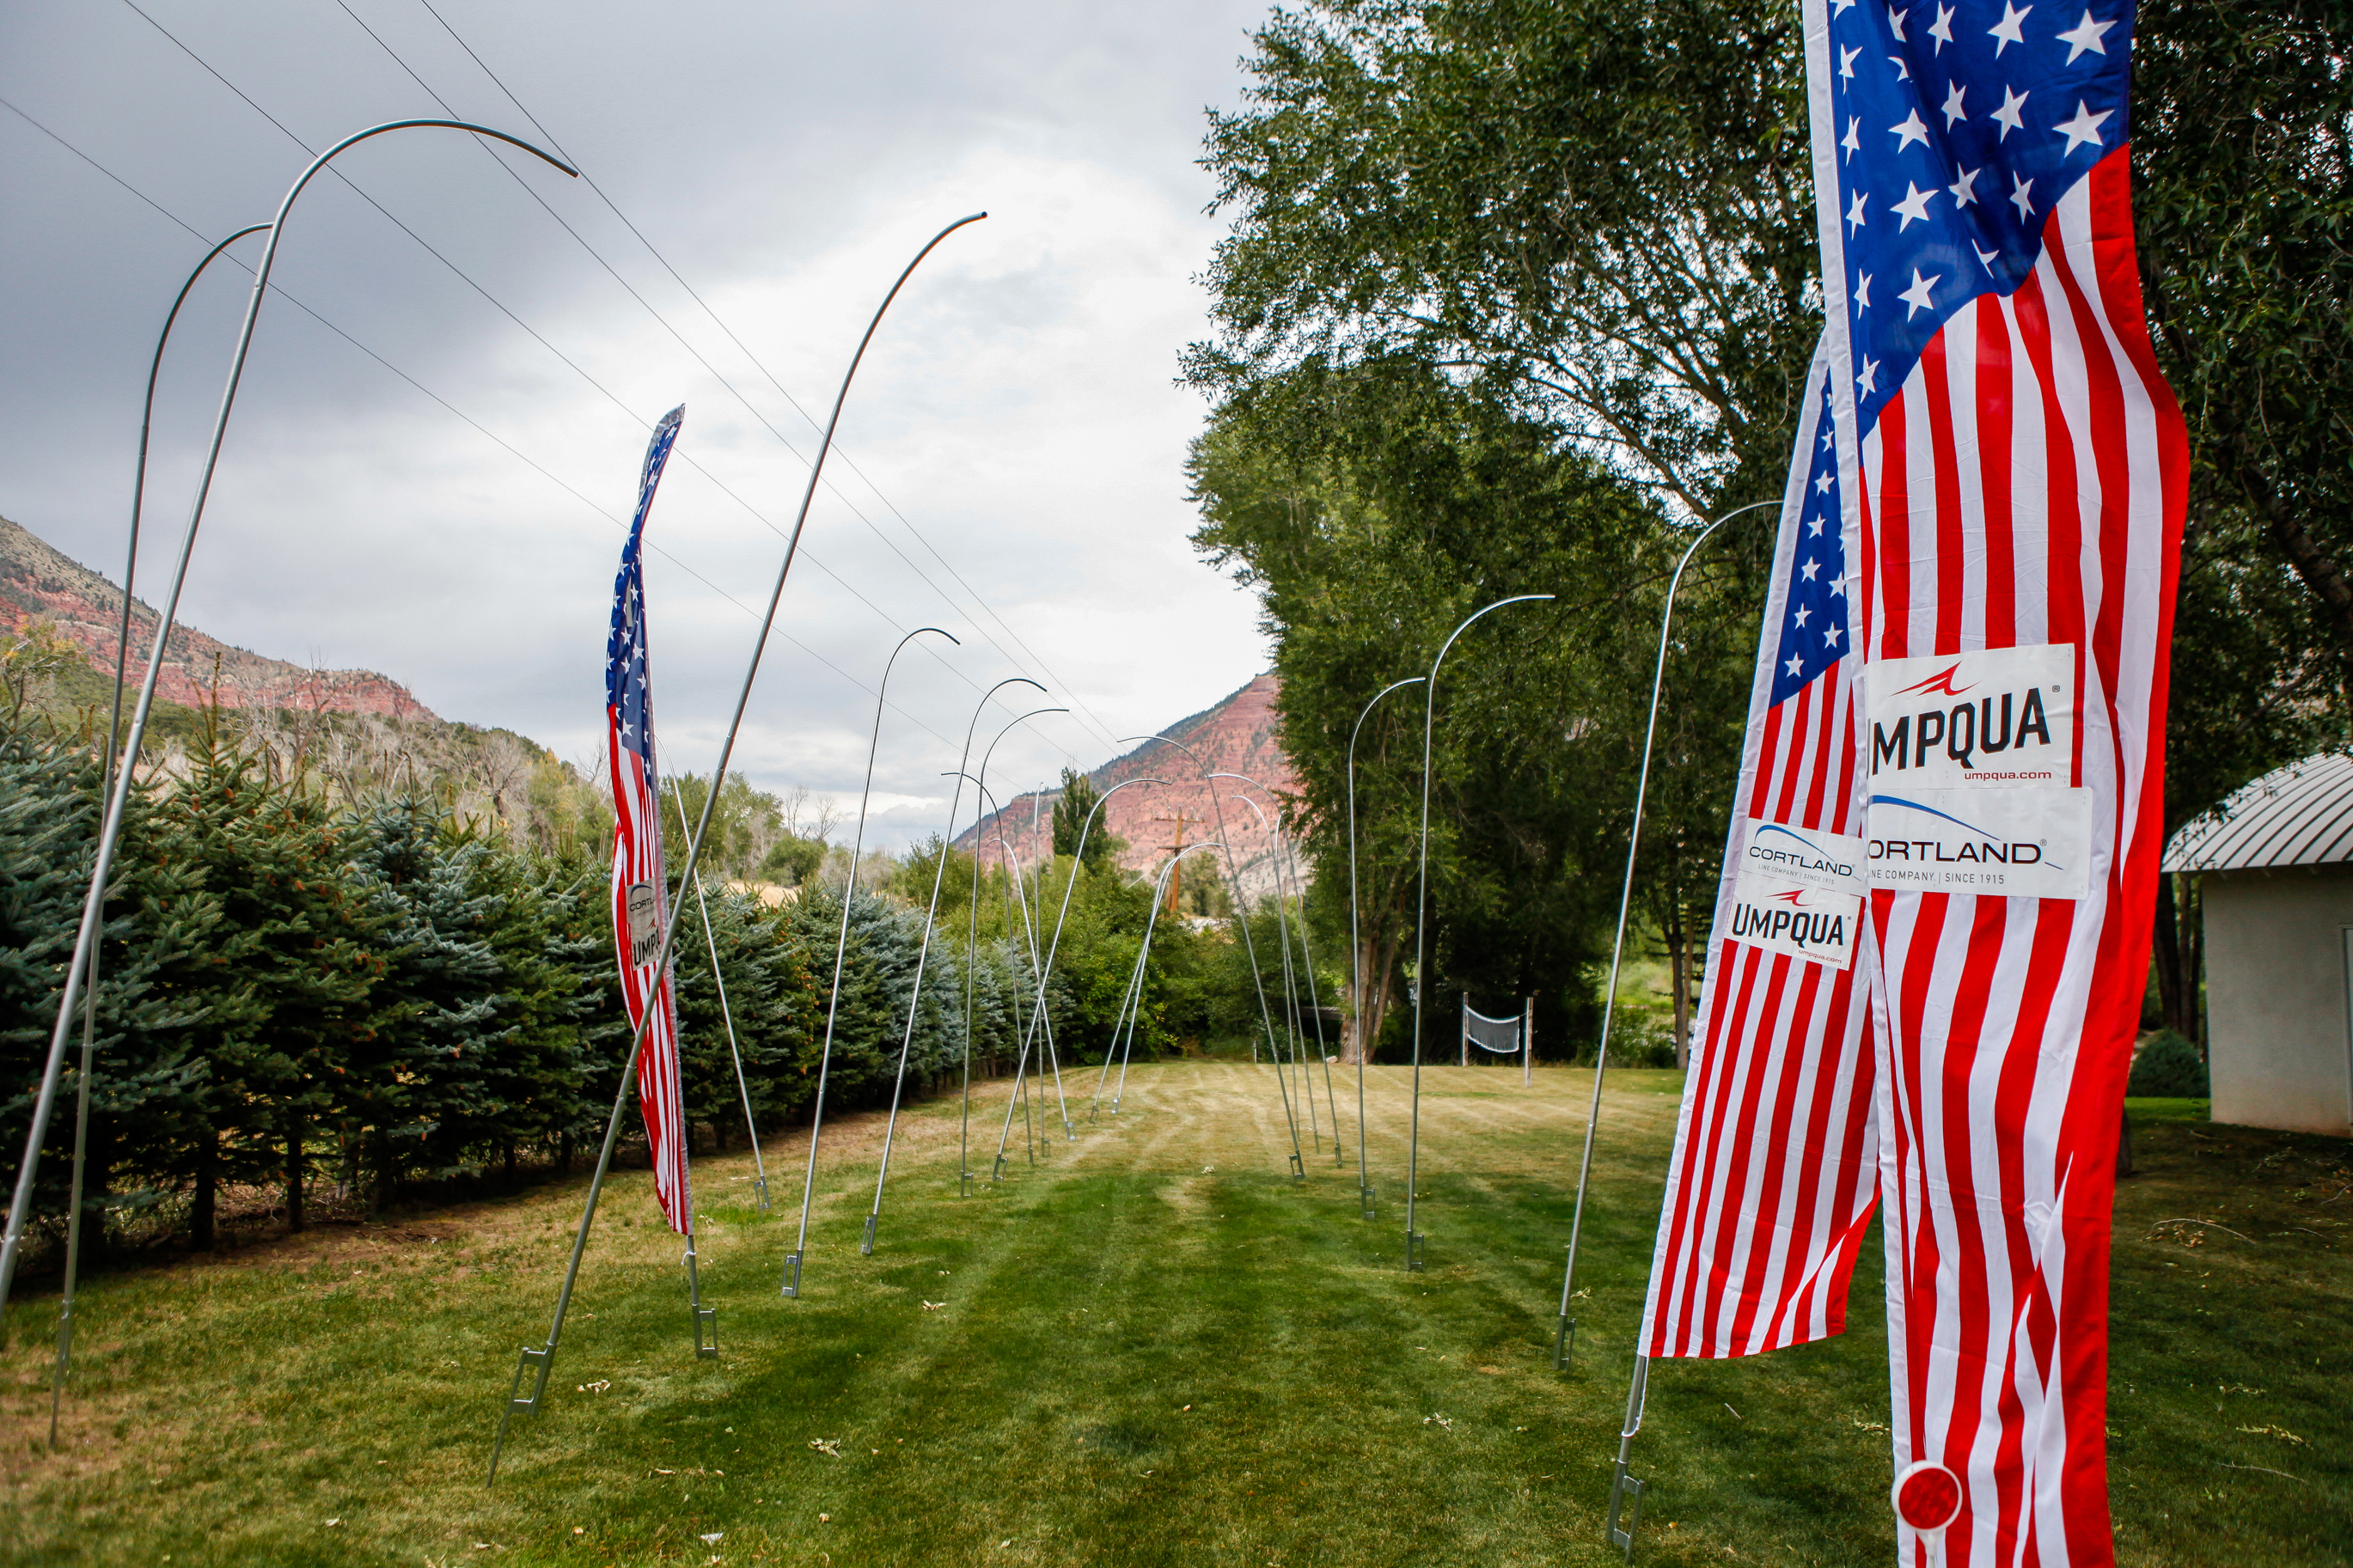 World Fly Fishing Championships return to Colo. after 2 decades abroad, Sept. 11-18